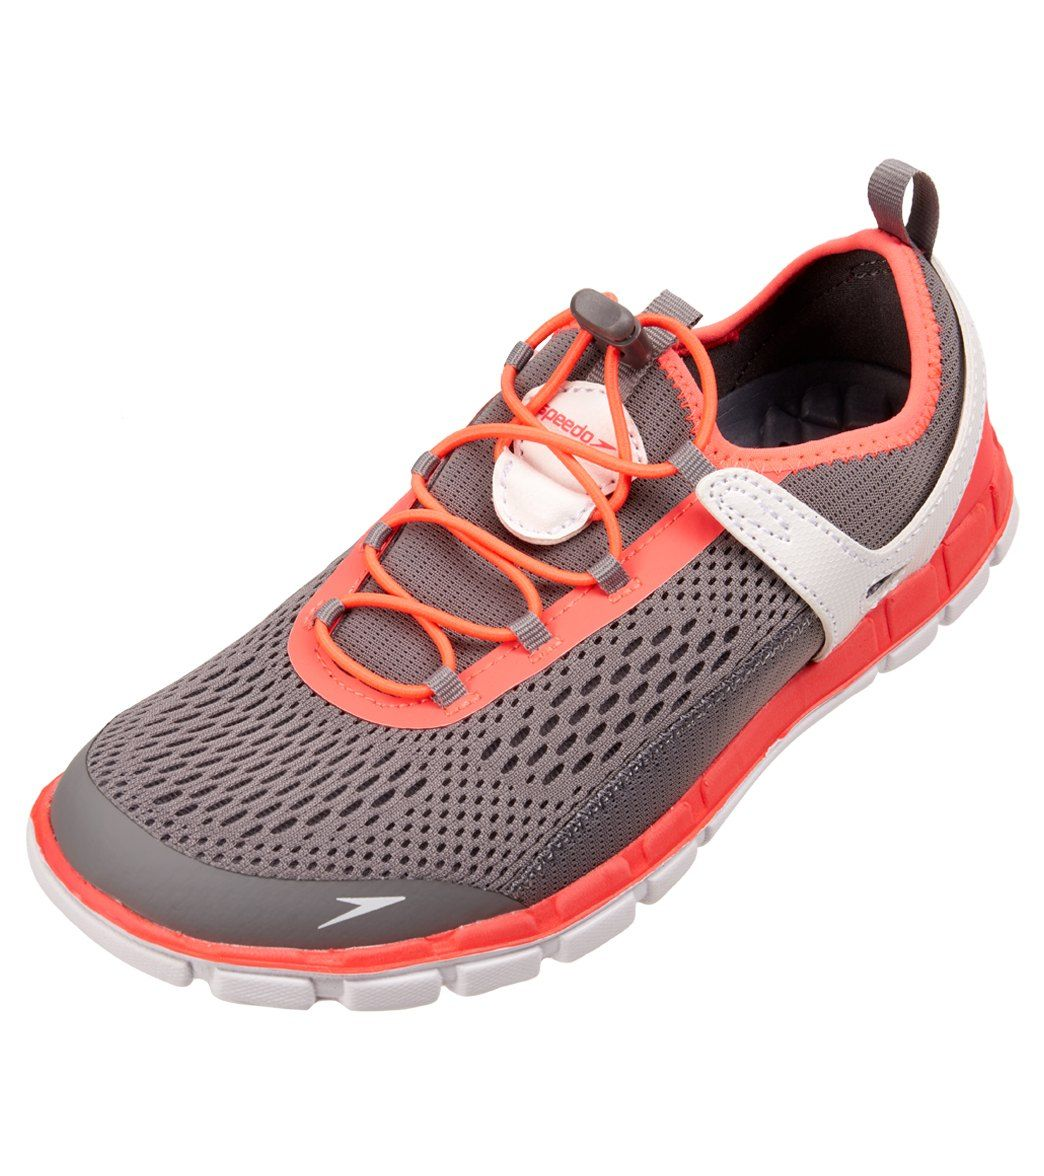 86882789eed Speedo Women s The Wake Water Shoe at SwimOutlet.com – The Web s most  popular swim shop